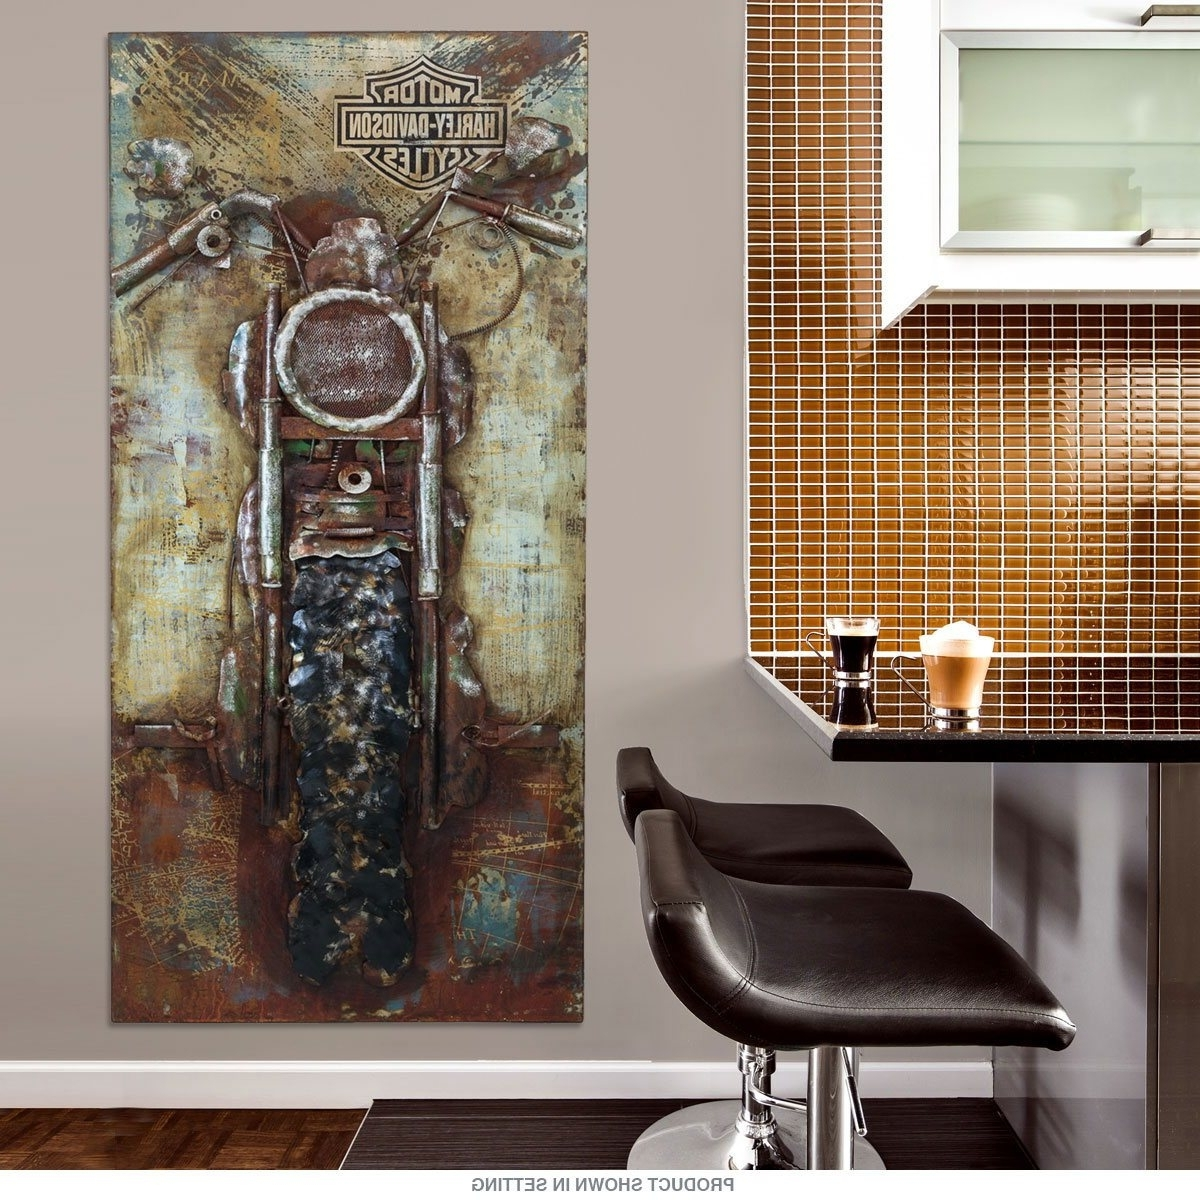 Living Room Outstanding Harley Davidson Image Ideas Bike Repurposed Within Preferred Harley Davidson Wall Art (View 13 of 20)